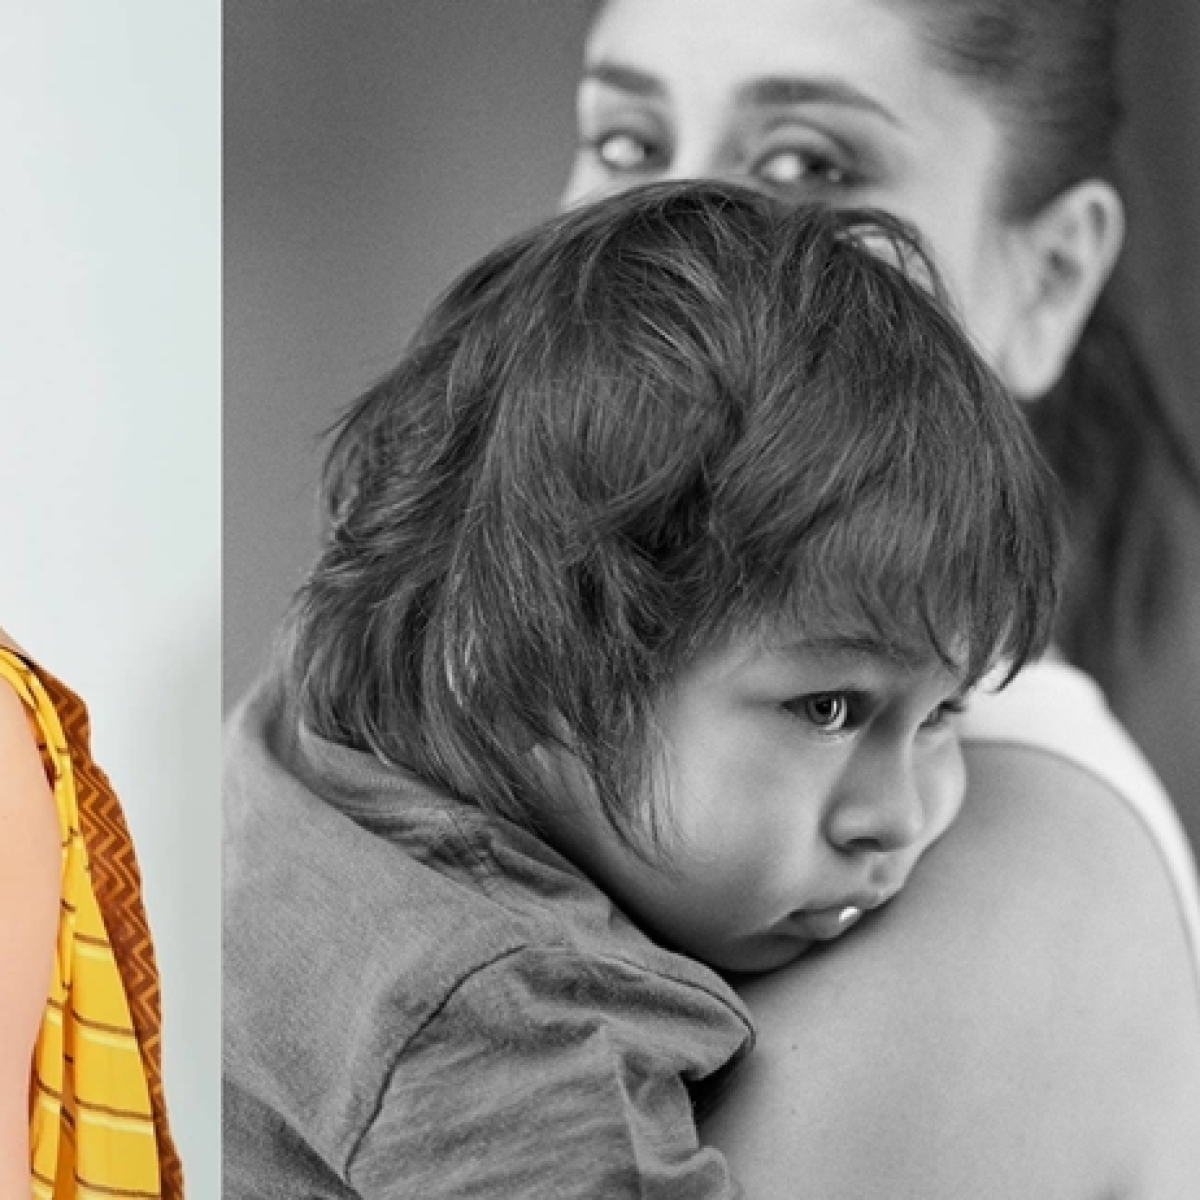 Kareena shares an adorable picture with Taimur, says 'the only one I will ever allow to steal my frame'